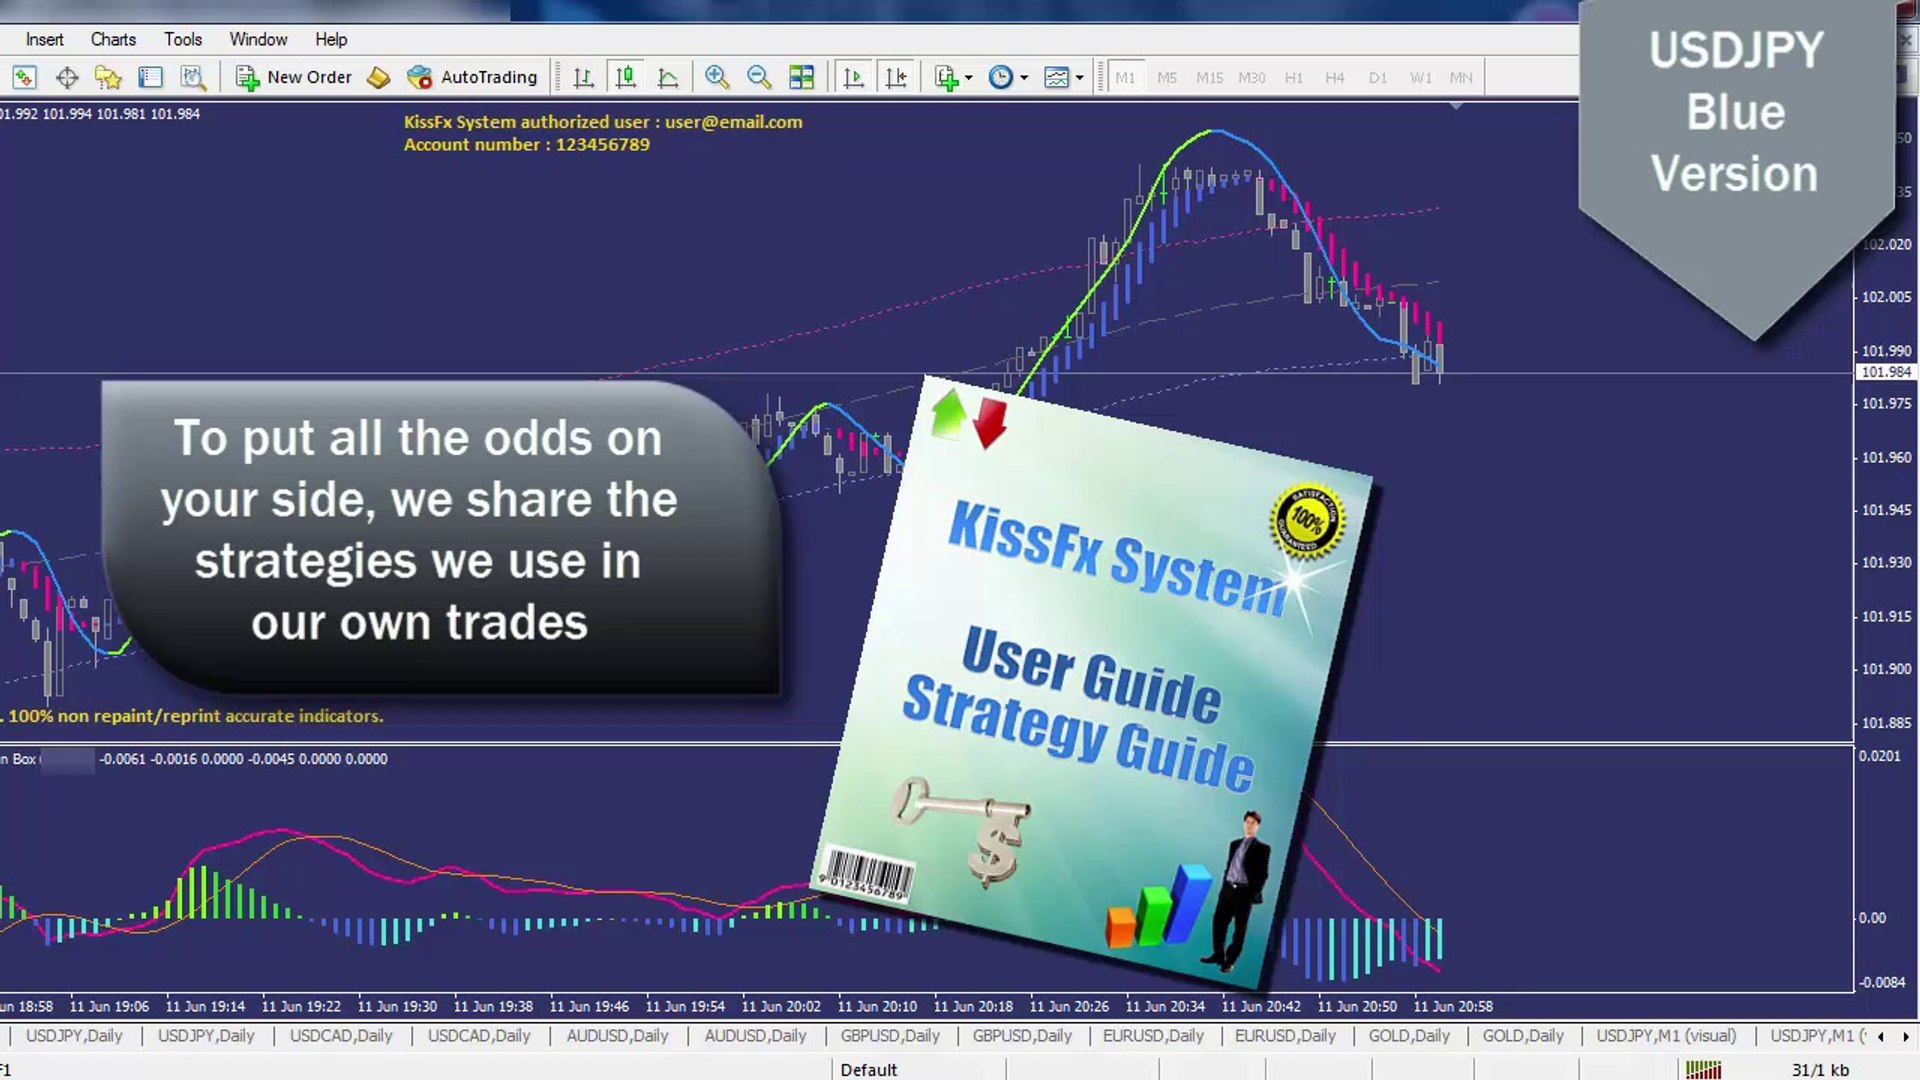 #1 Best Forex Indicator - Non repaint - Best Buy/Sell signals